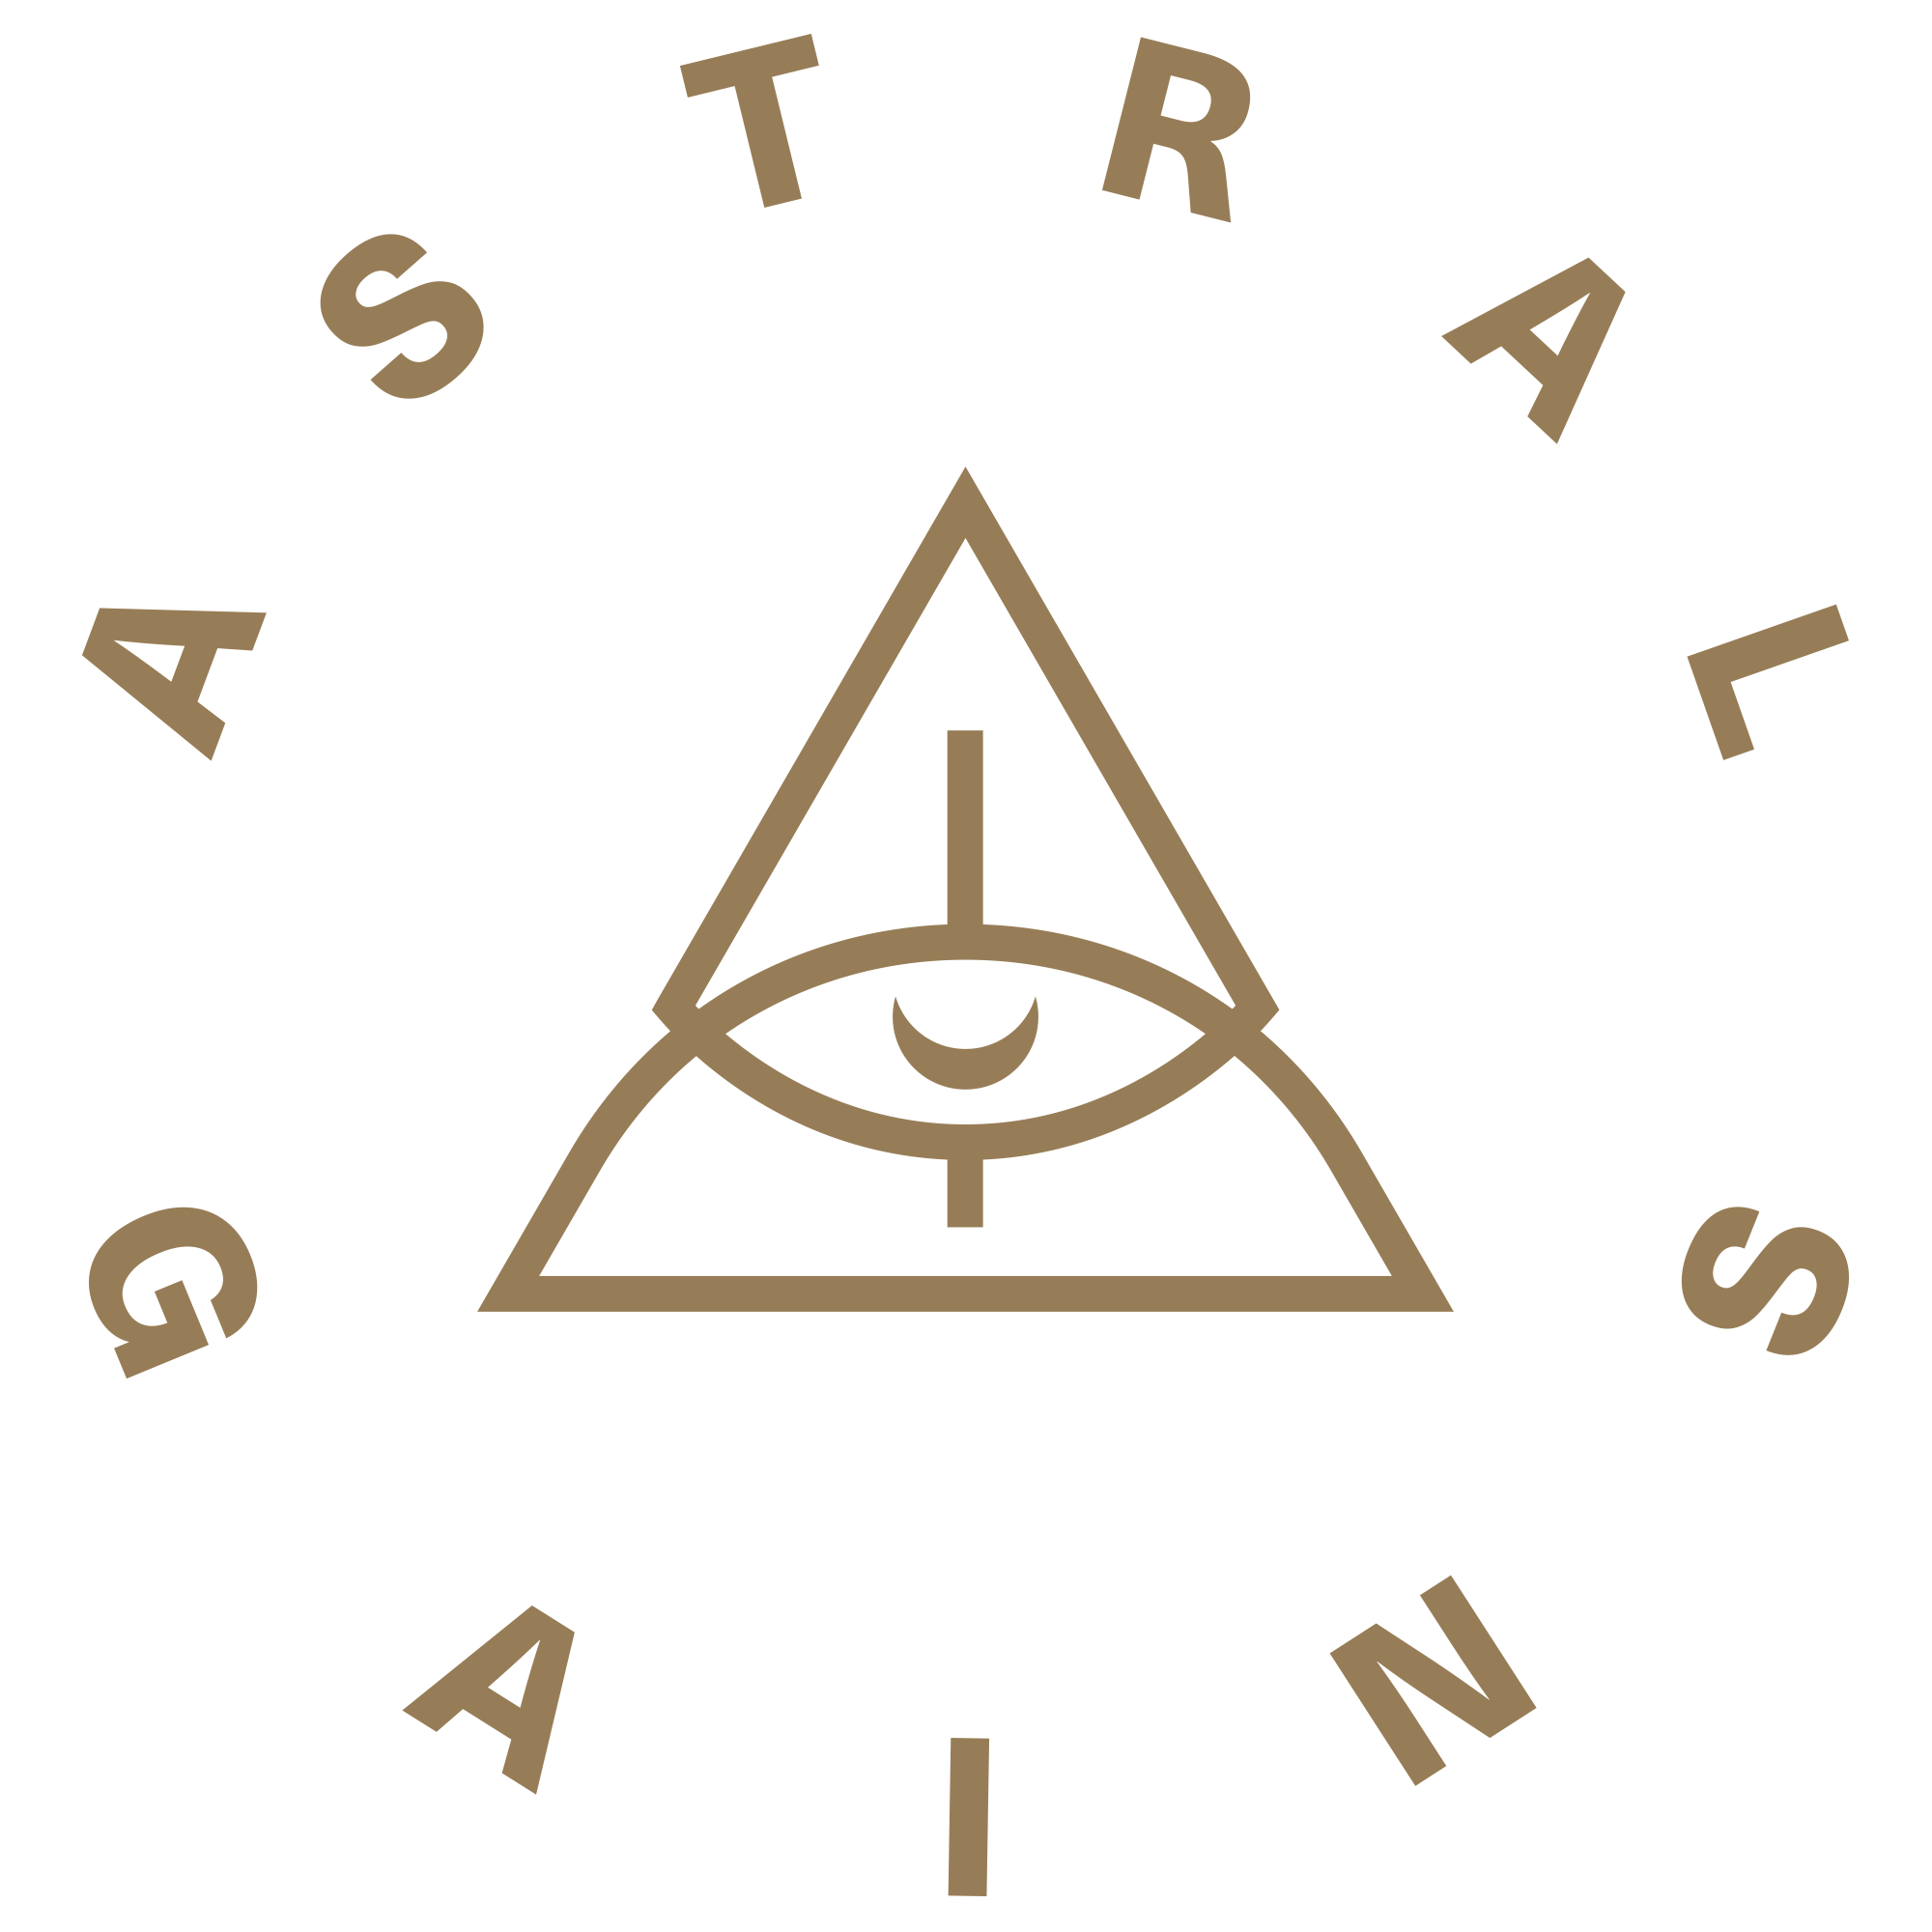 Astral Gains Ltd